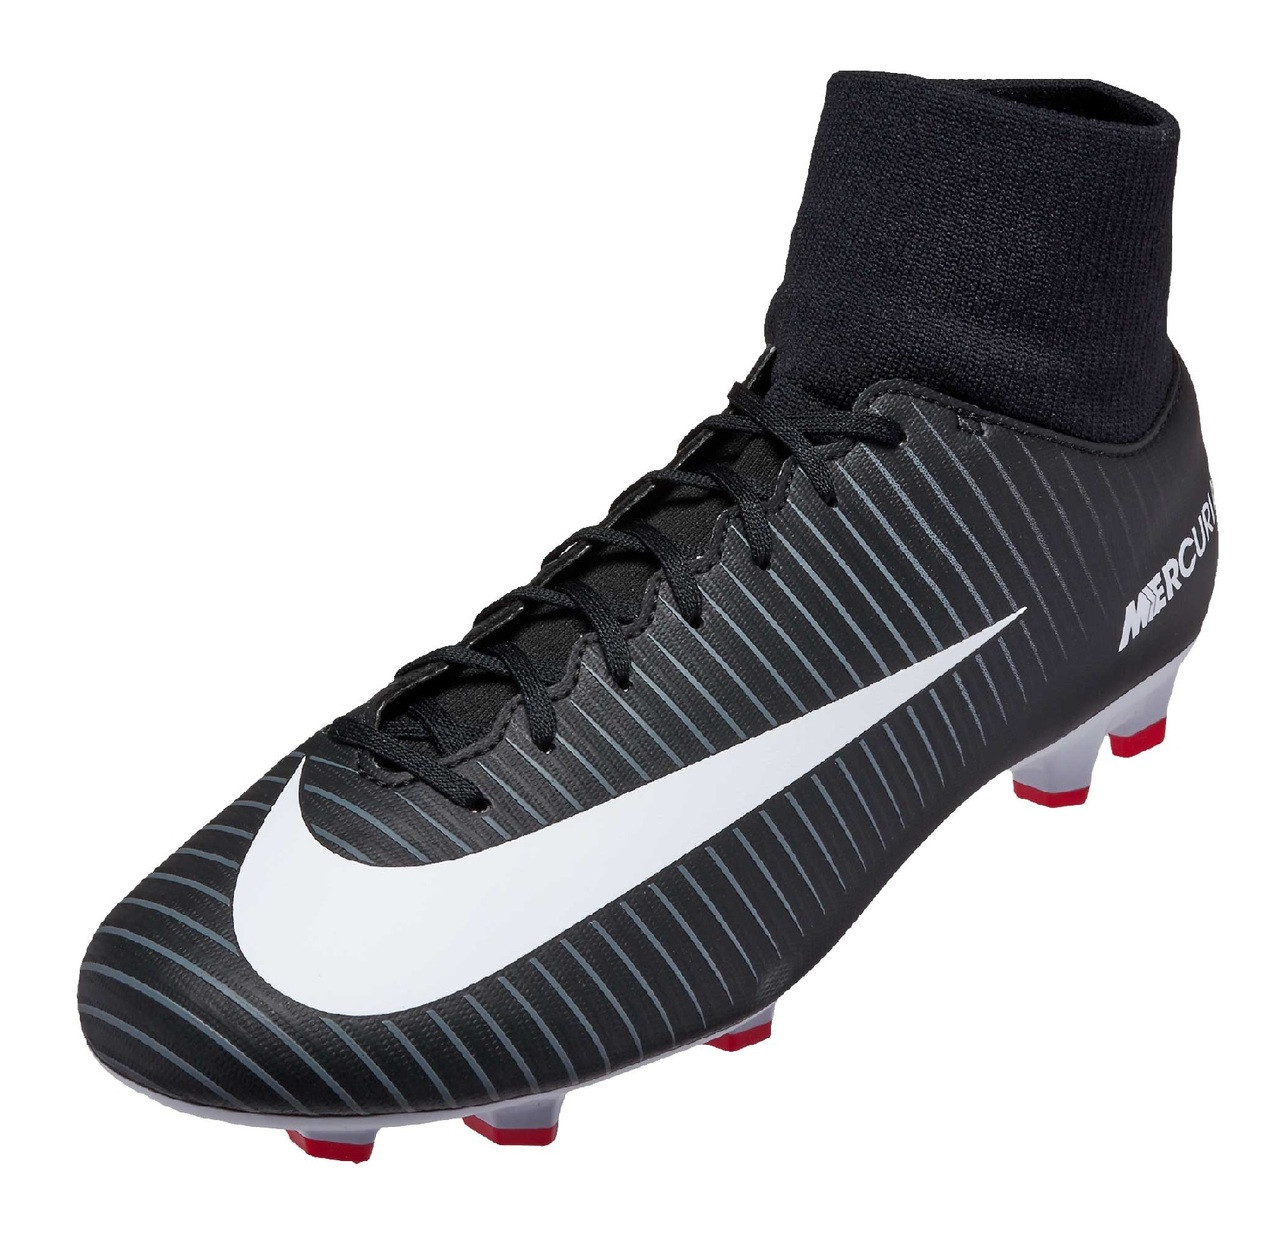 reputable site 42e5f a1ea9 Nike Mercurial Victory VI DF FG - Black/White/Dark/Grey (32618)